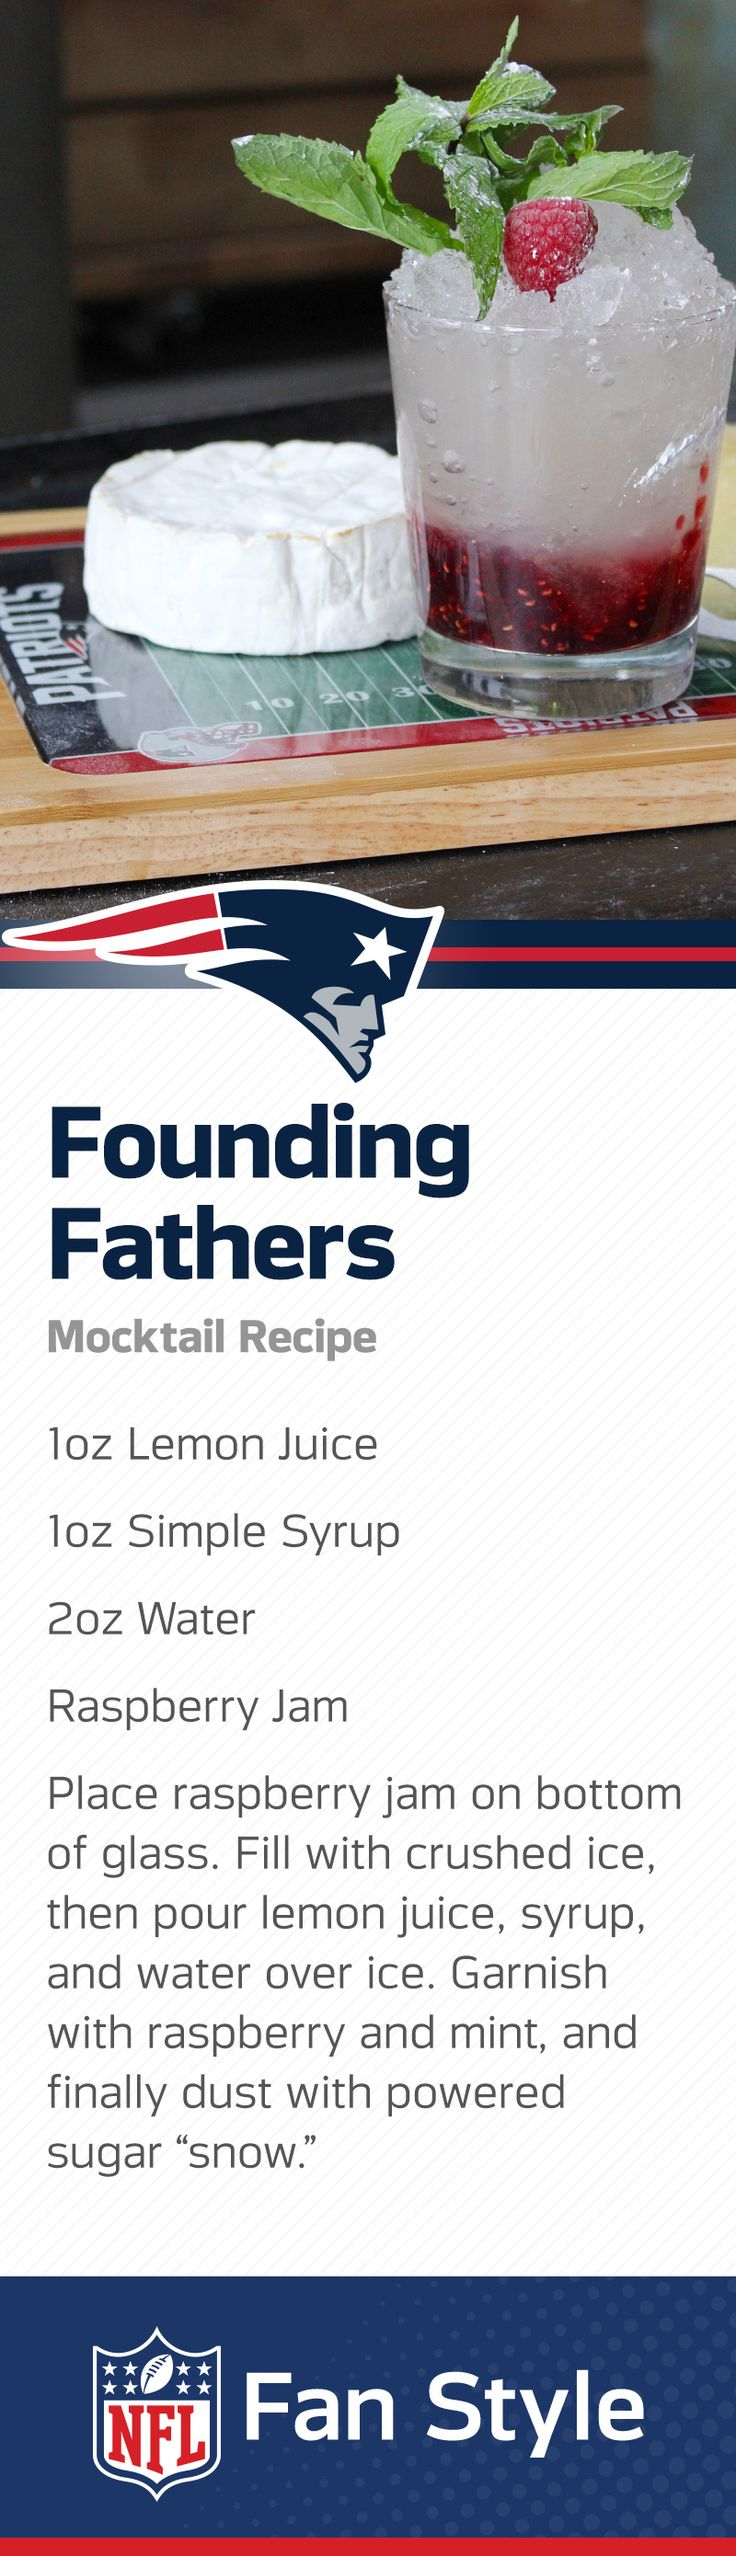 New England winters are legendarily tough. Turn the tables on the next blizzard with this frozen lemon and raspberry Patriots mocktail recipe. This Pats drink will have you winning your next Homegate.